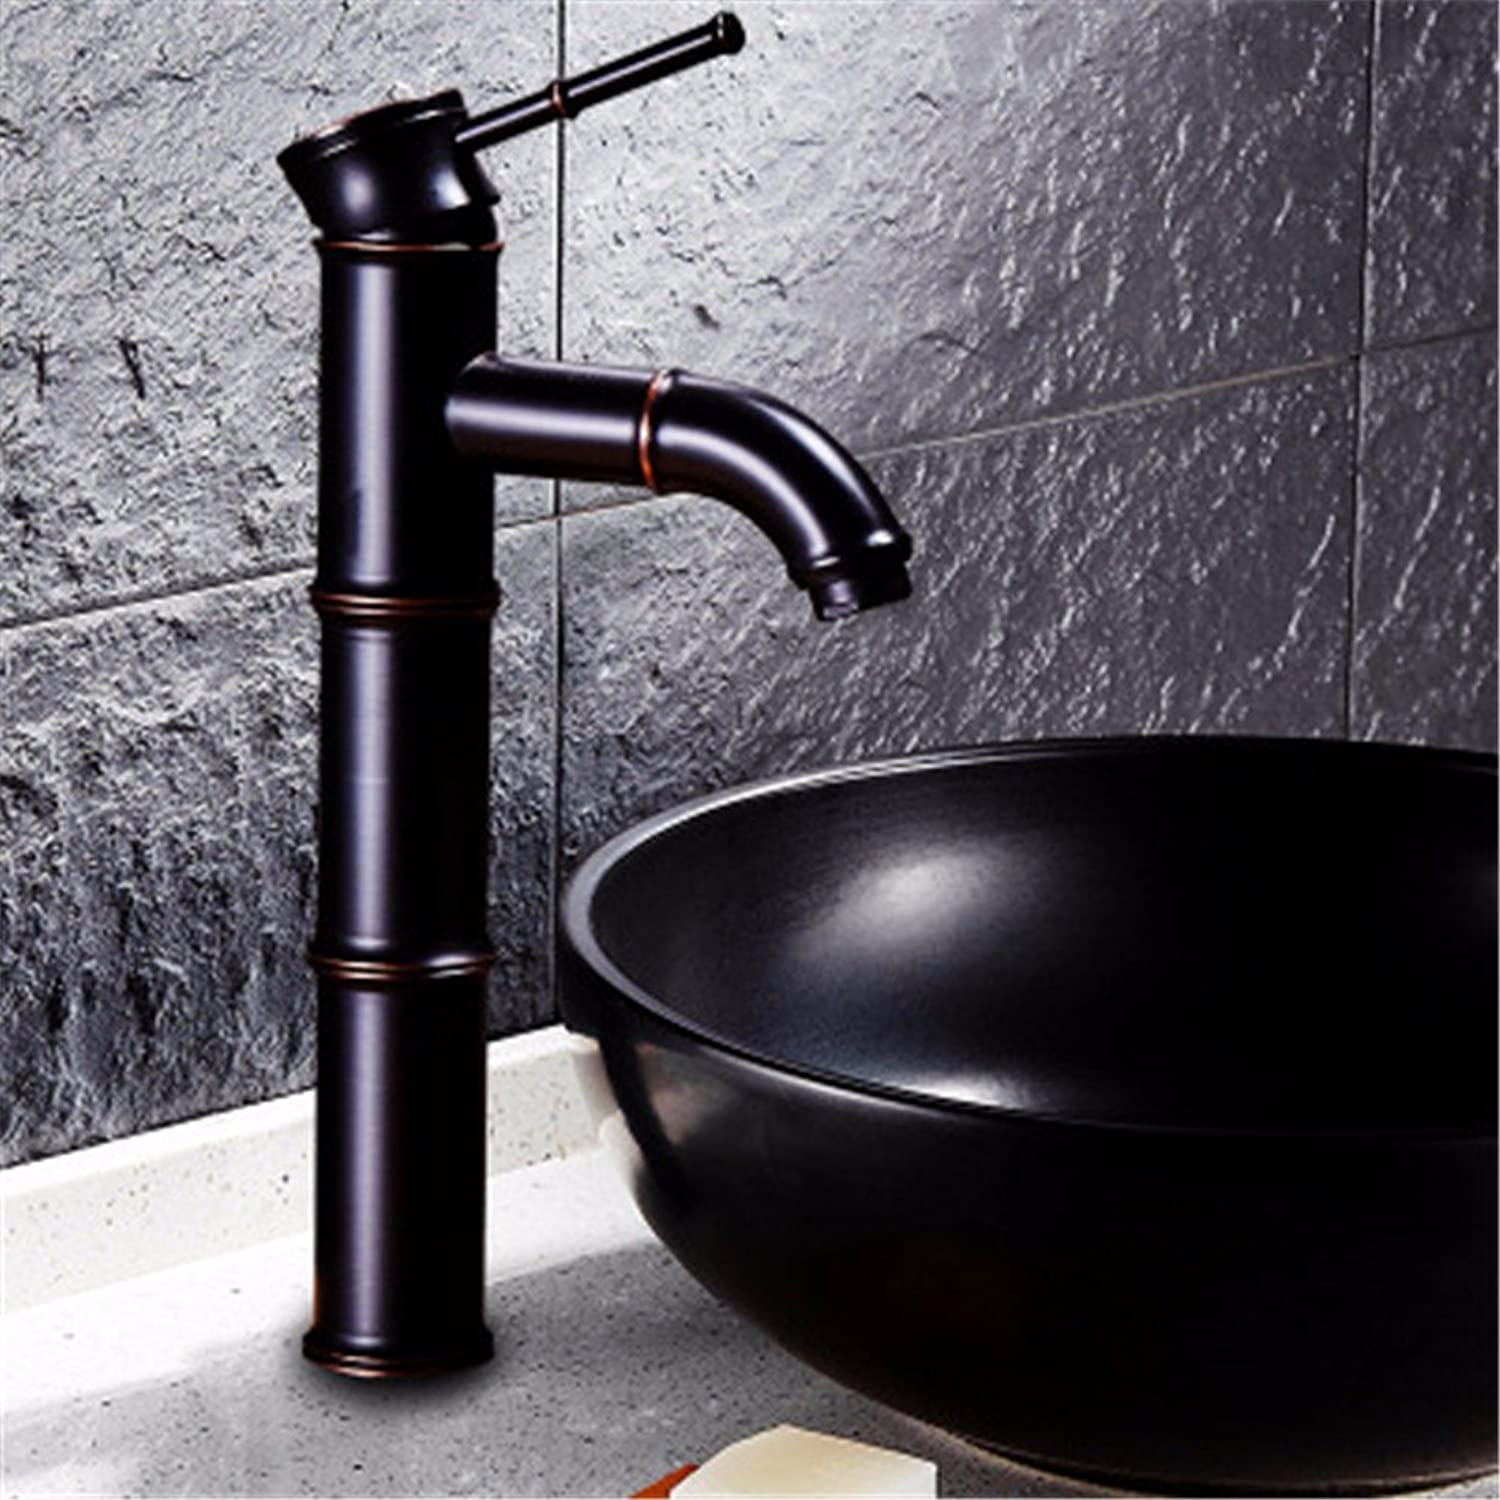 Bijjaladeva Antique Bathroom Sink Vessel Faucet Basin Mixer Tap Basin-wide water faucet antique Copper Black hot and cold surface Basin Water mixing valve B2